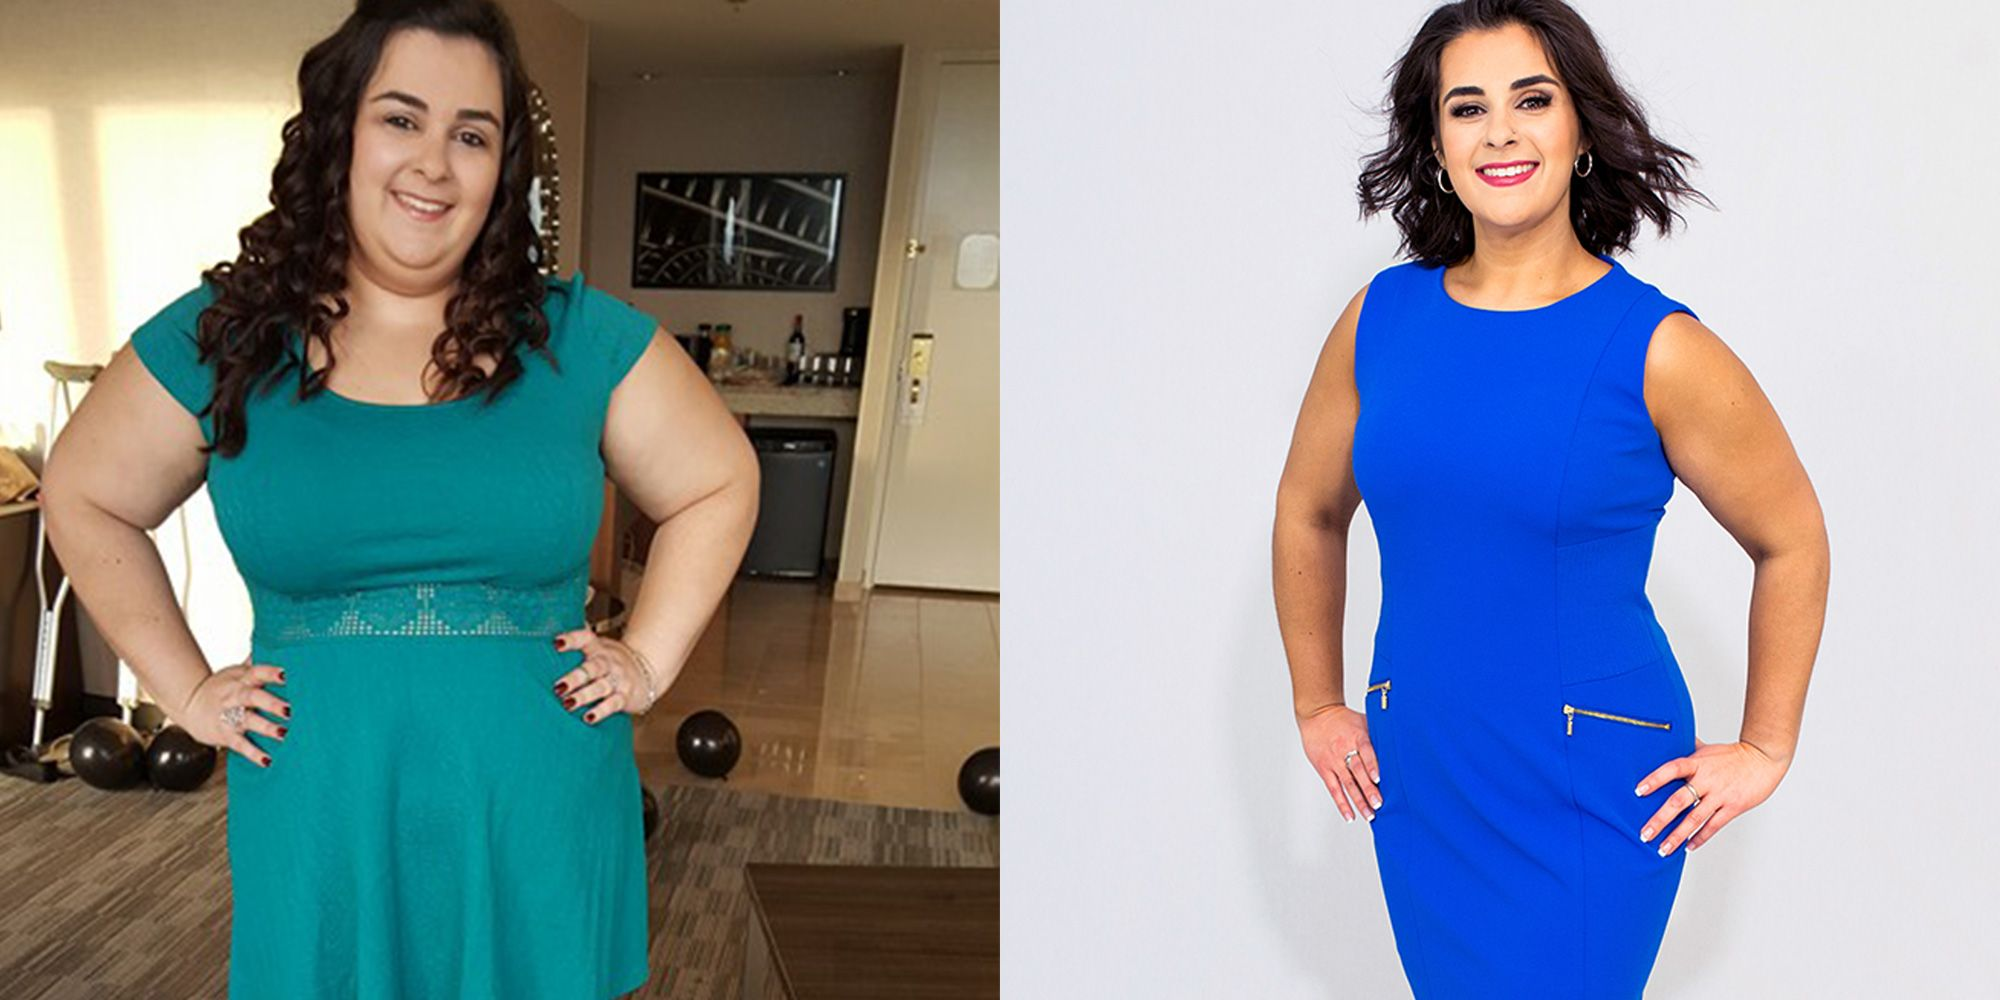 I Hated My Wedding Photos—So I Changed My Habits And Lost 100 Pounds